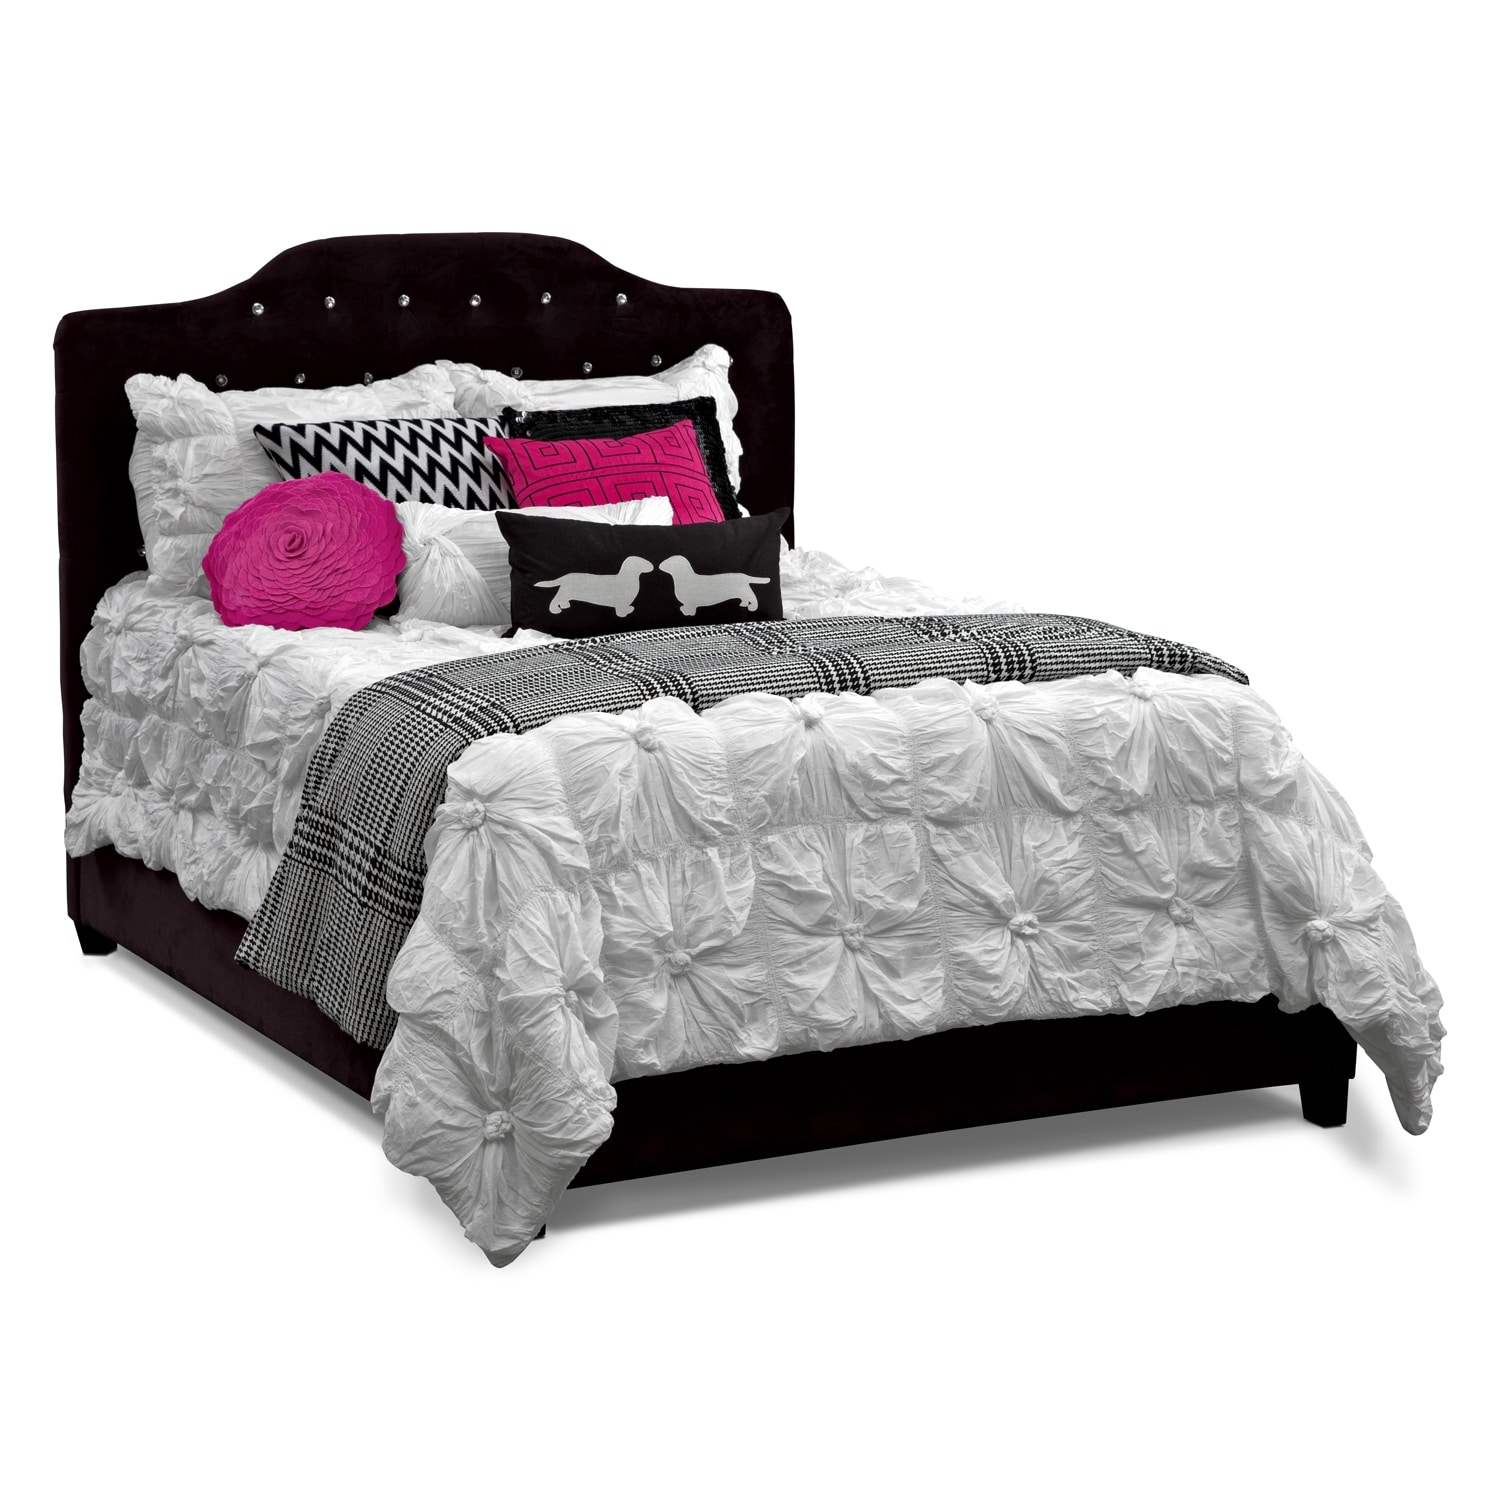 Erin IV Full/Queen Bedding Set